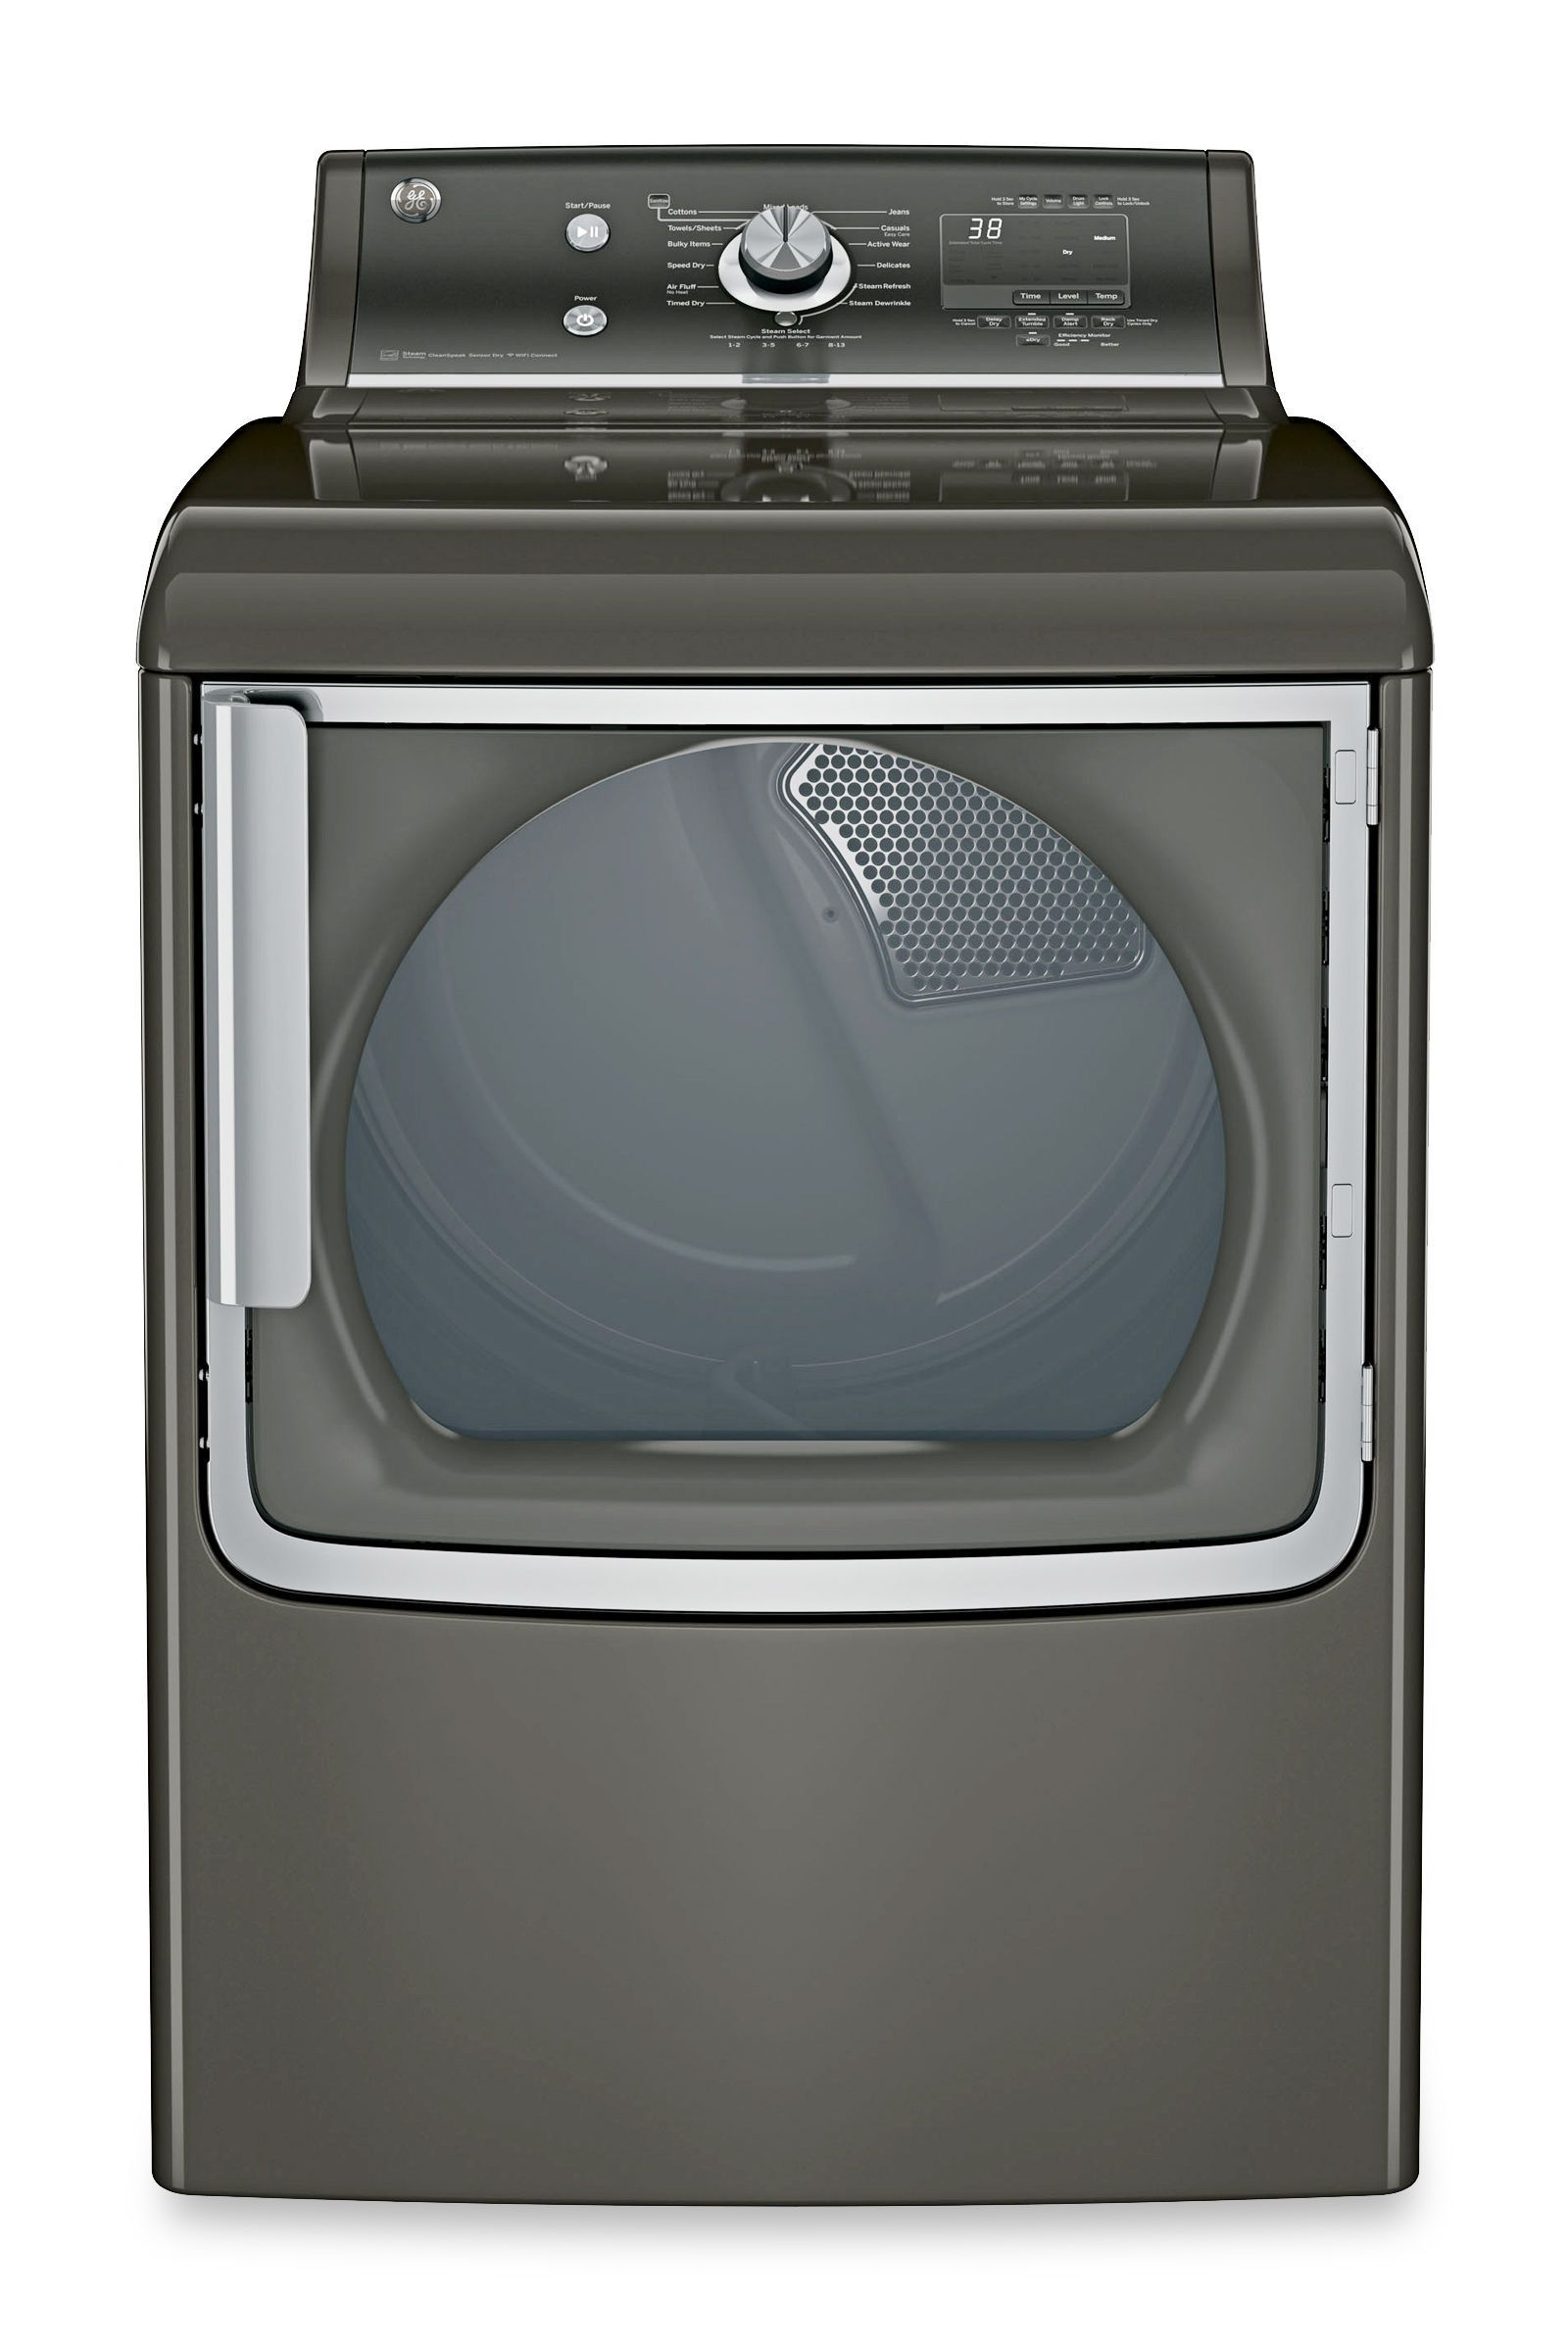 8 Best Dryers To Buy In 2019 According To Cleaning Experts Electric Dryers Gas Dryer Best Dryer